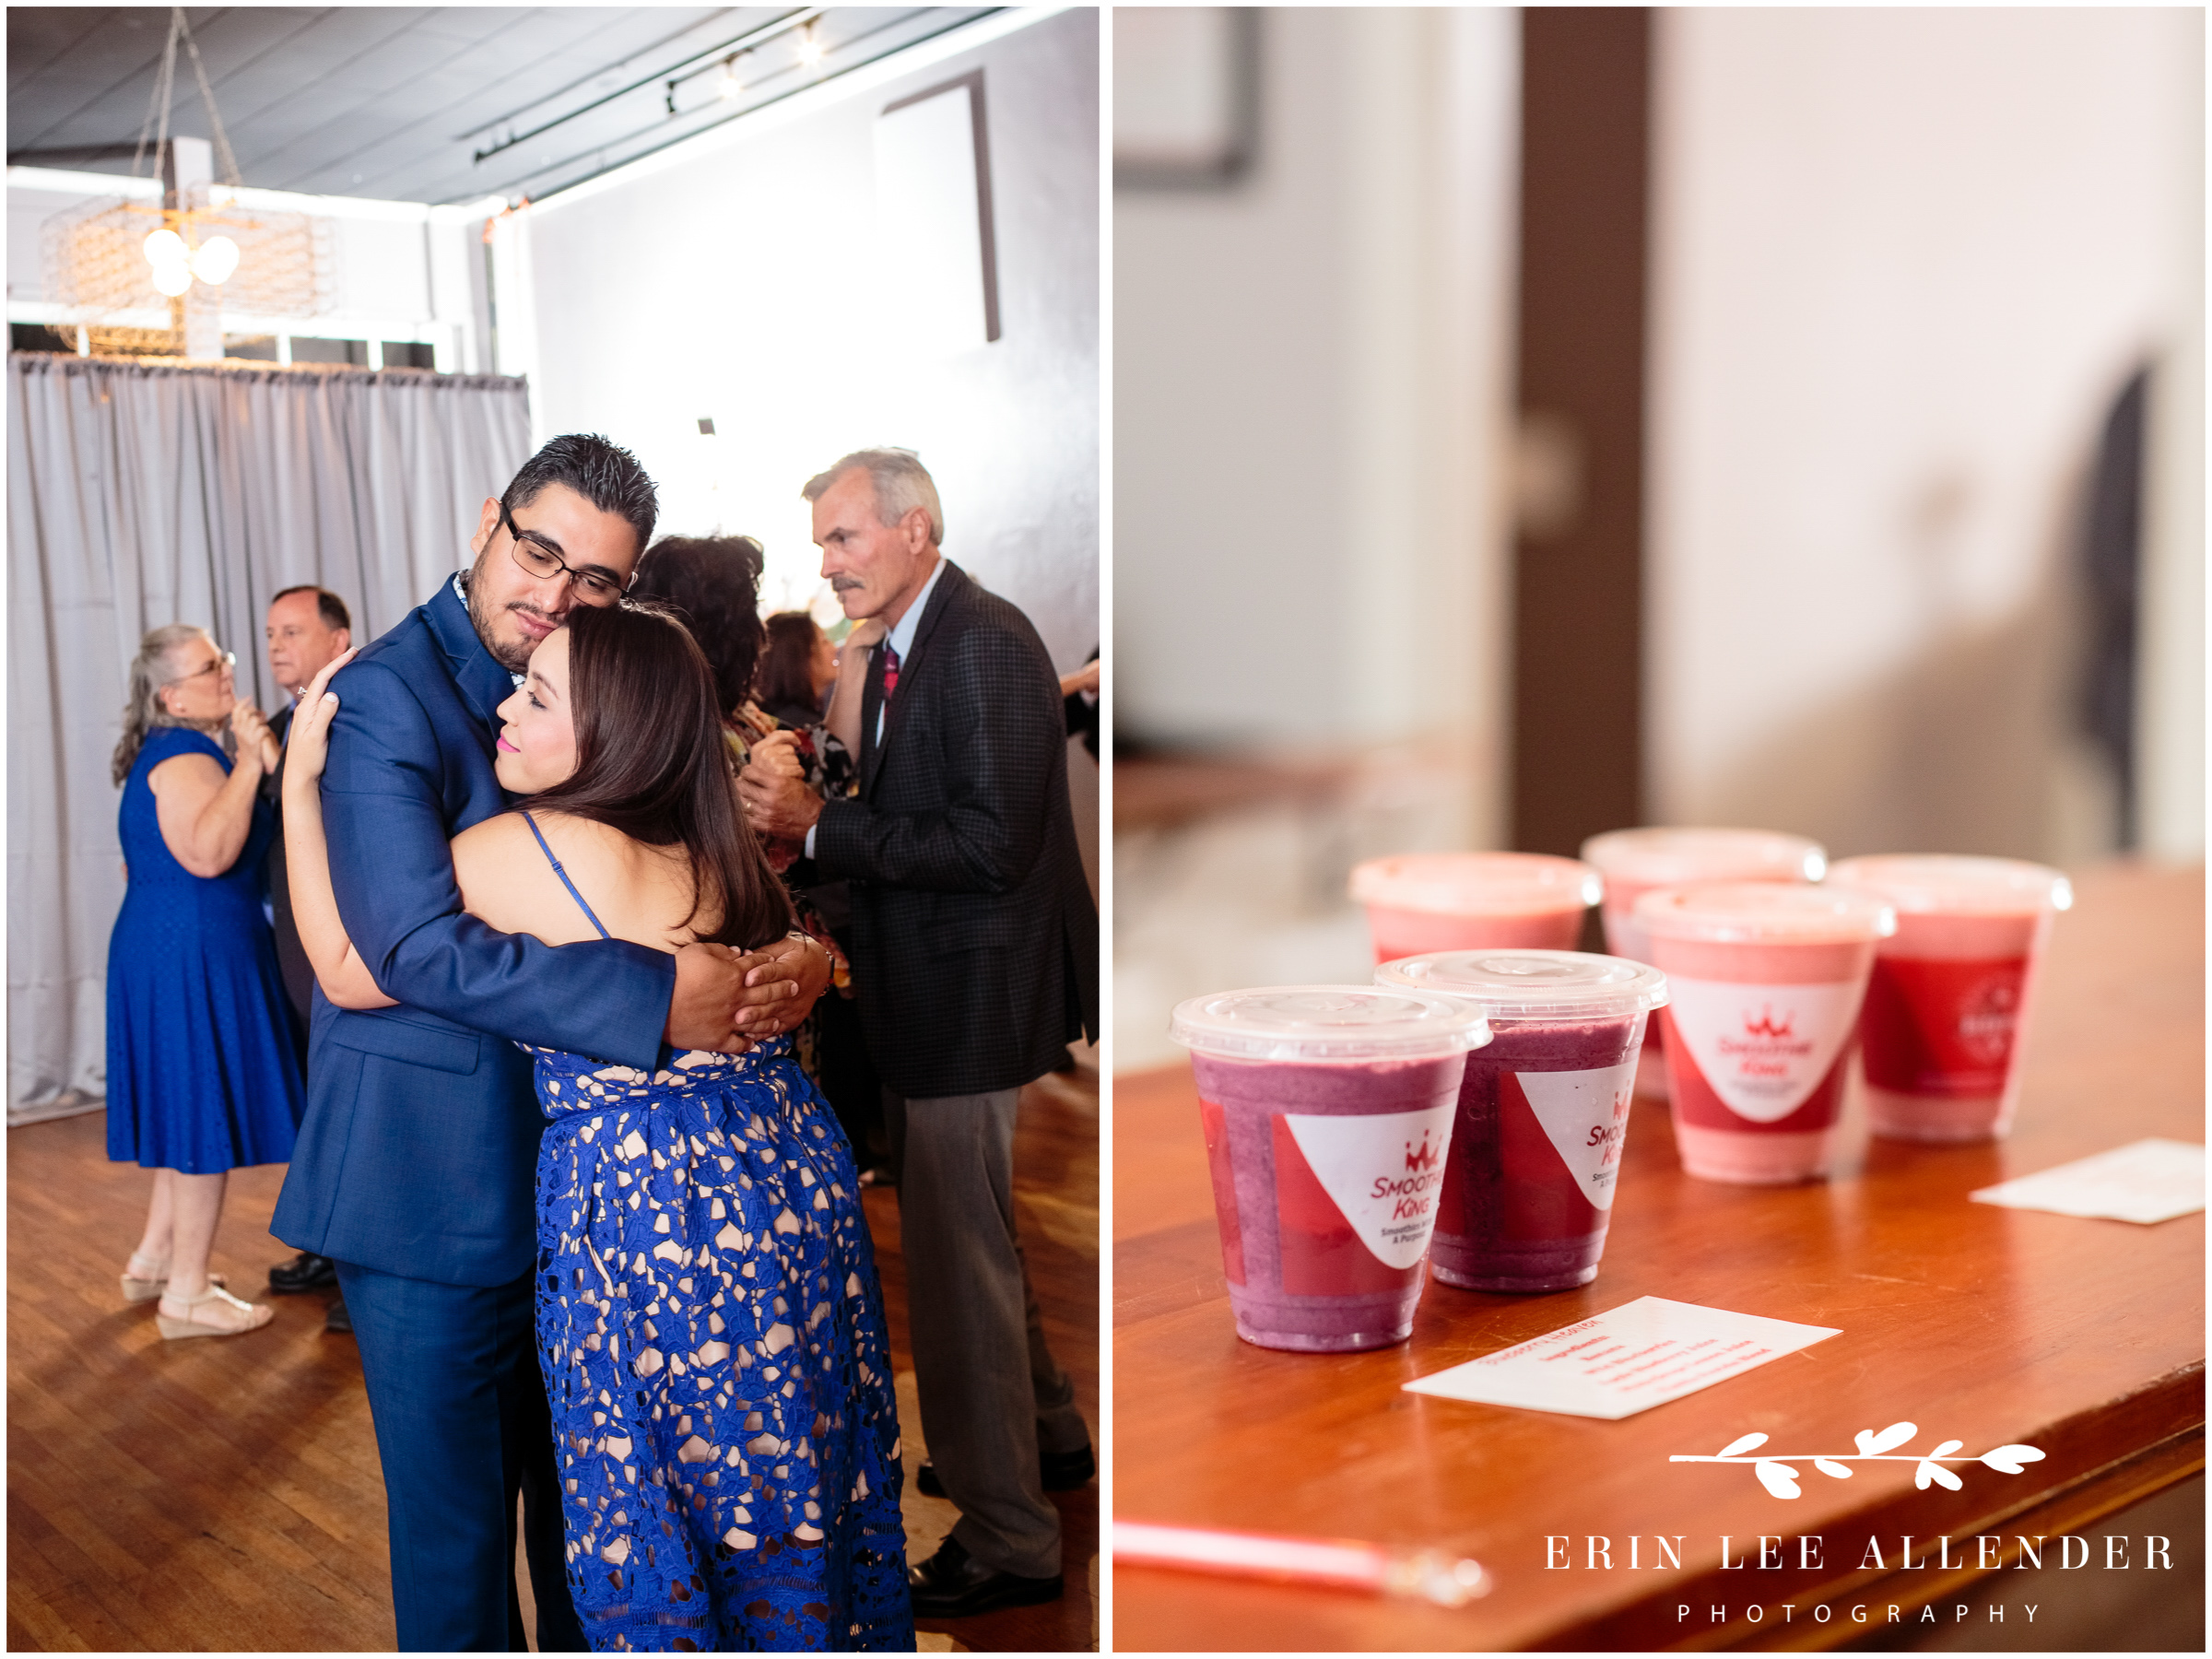 Smoothies-at-wedding